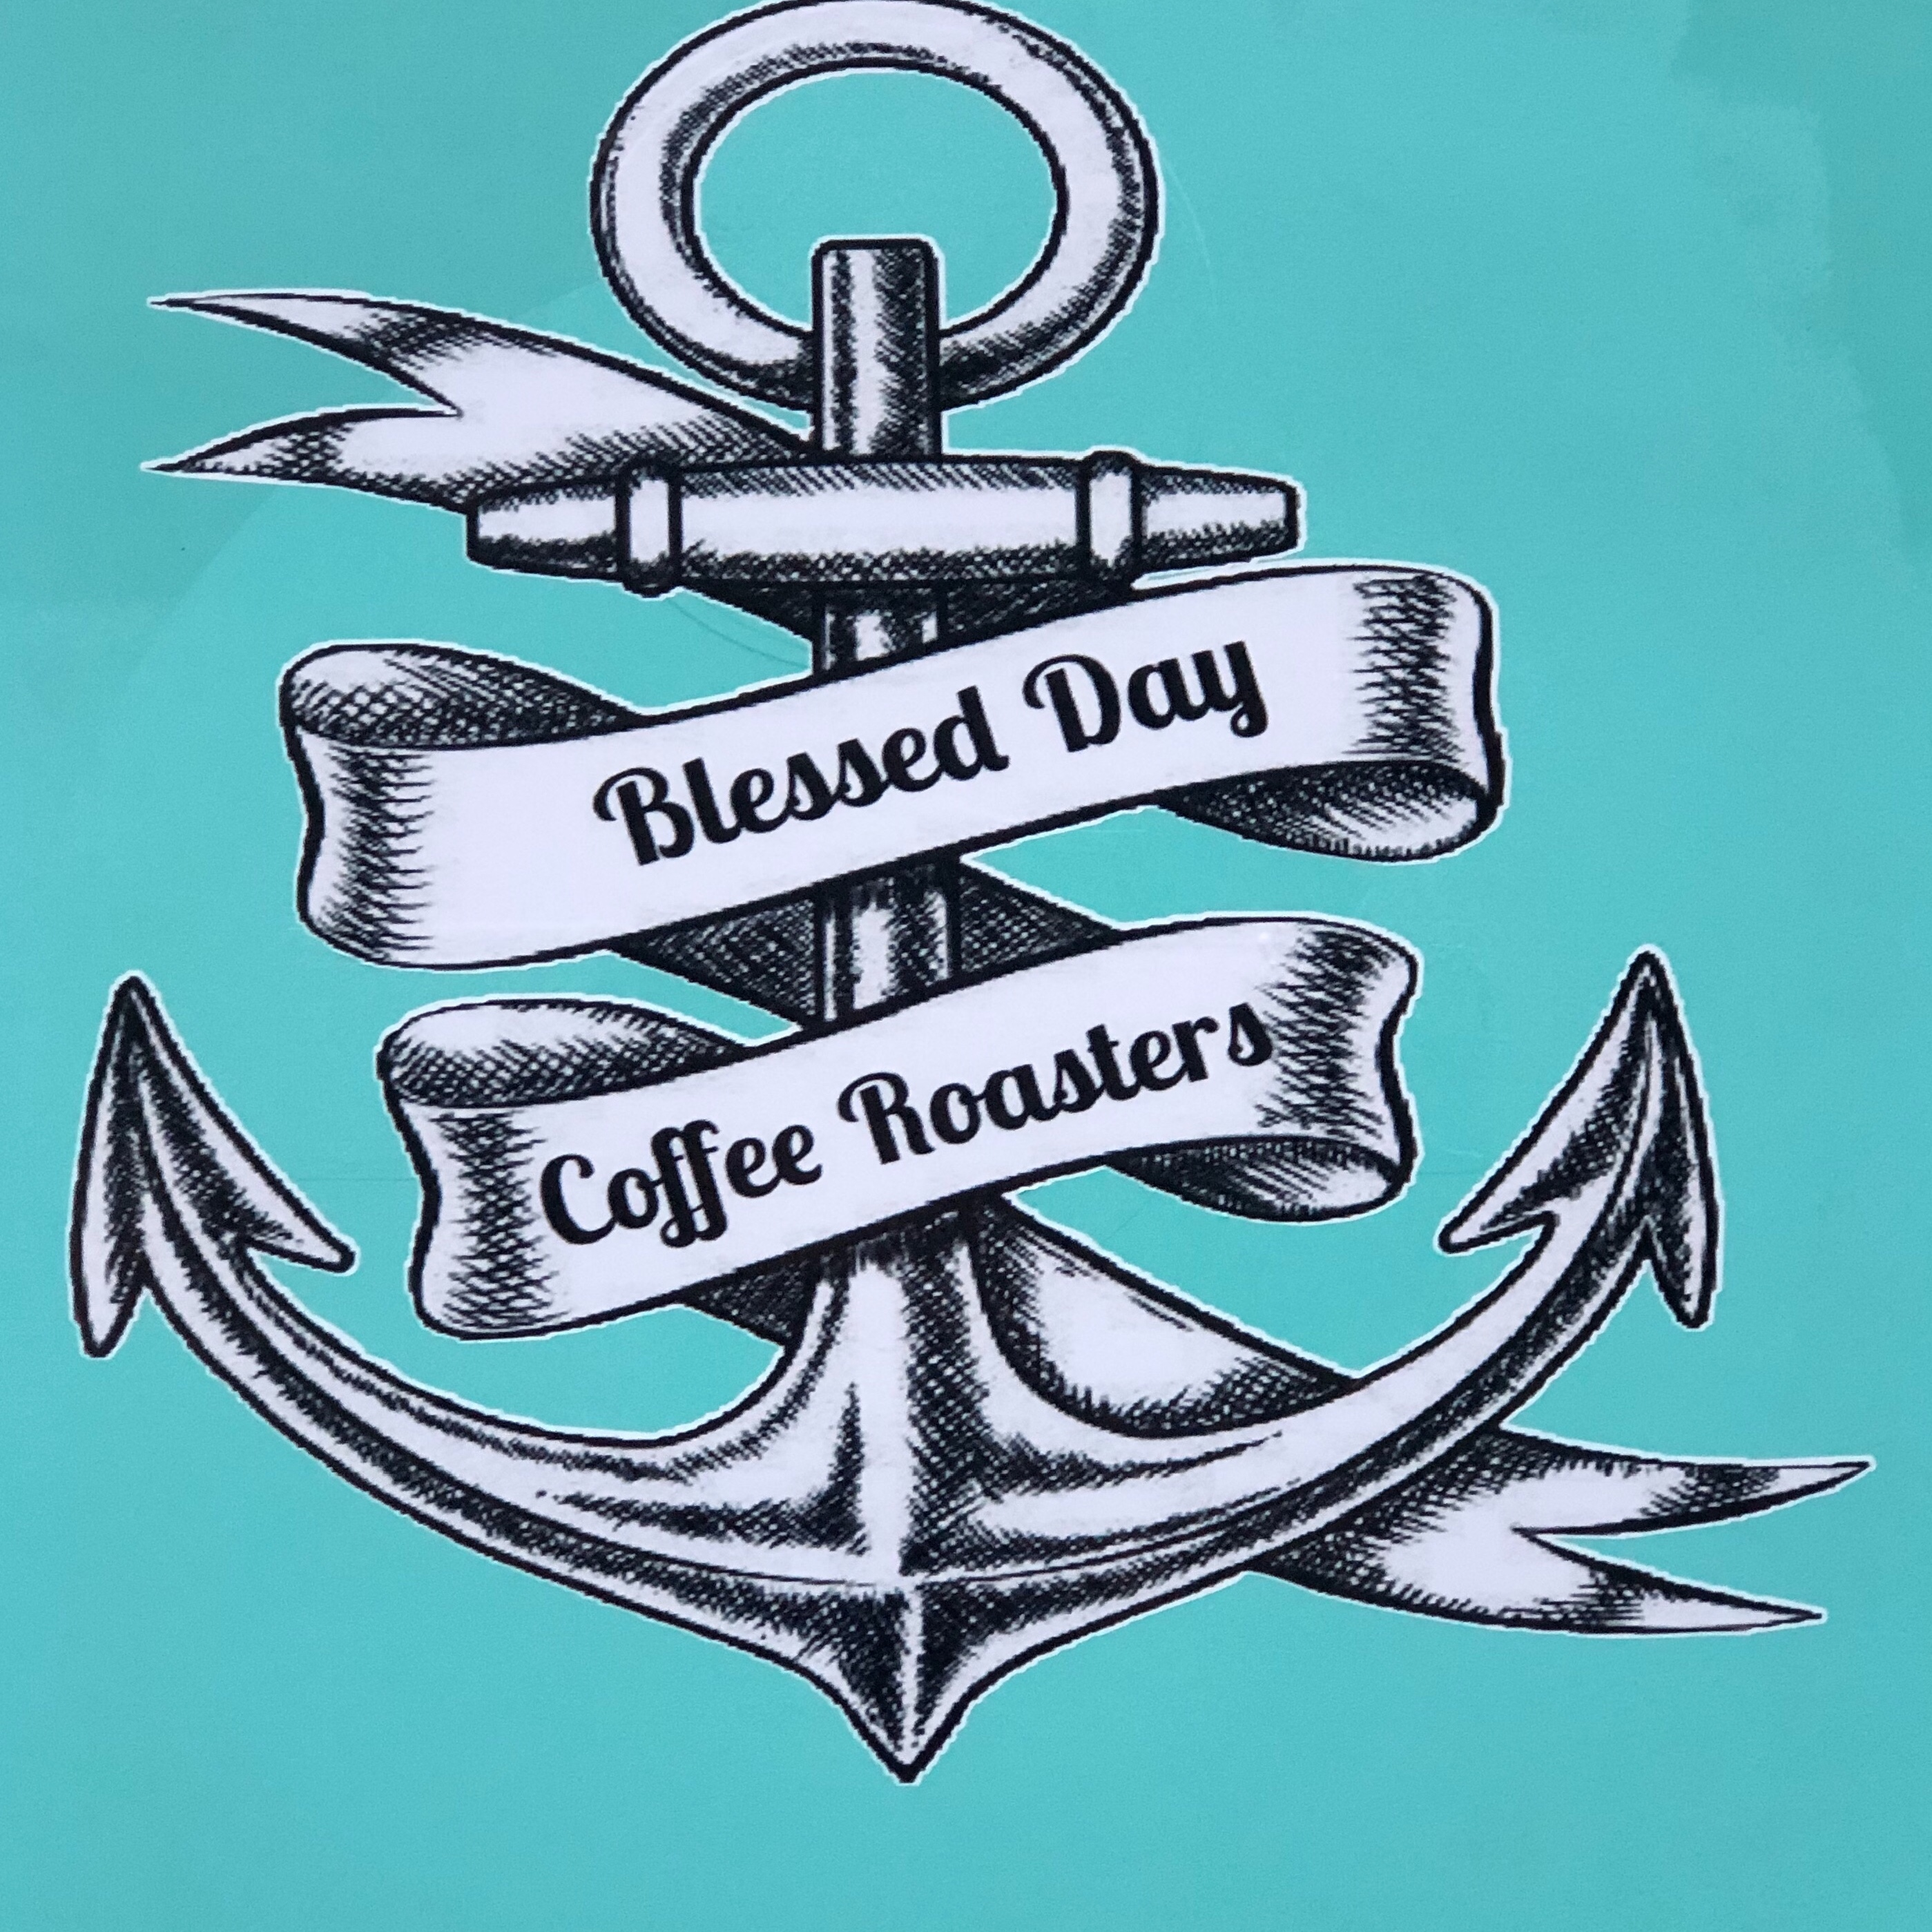 Blessed Day Coffee Roasters food truck profile image